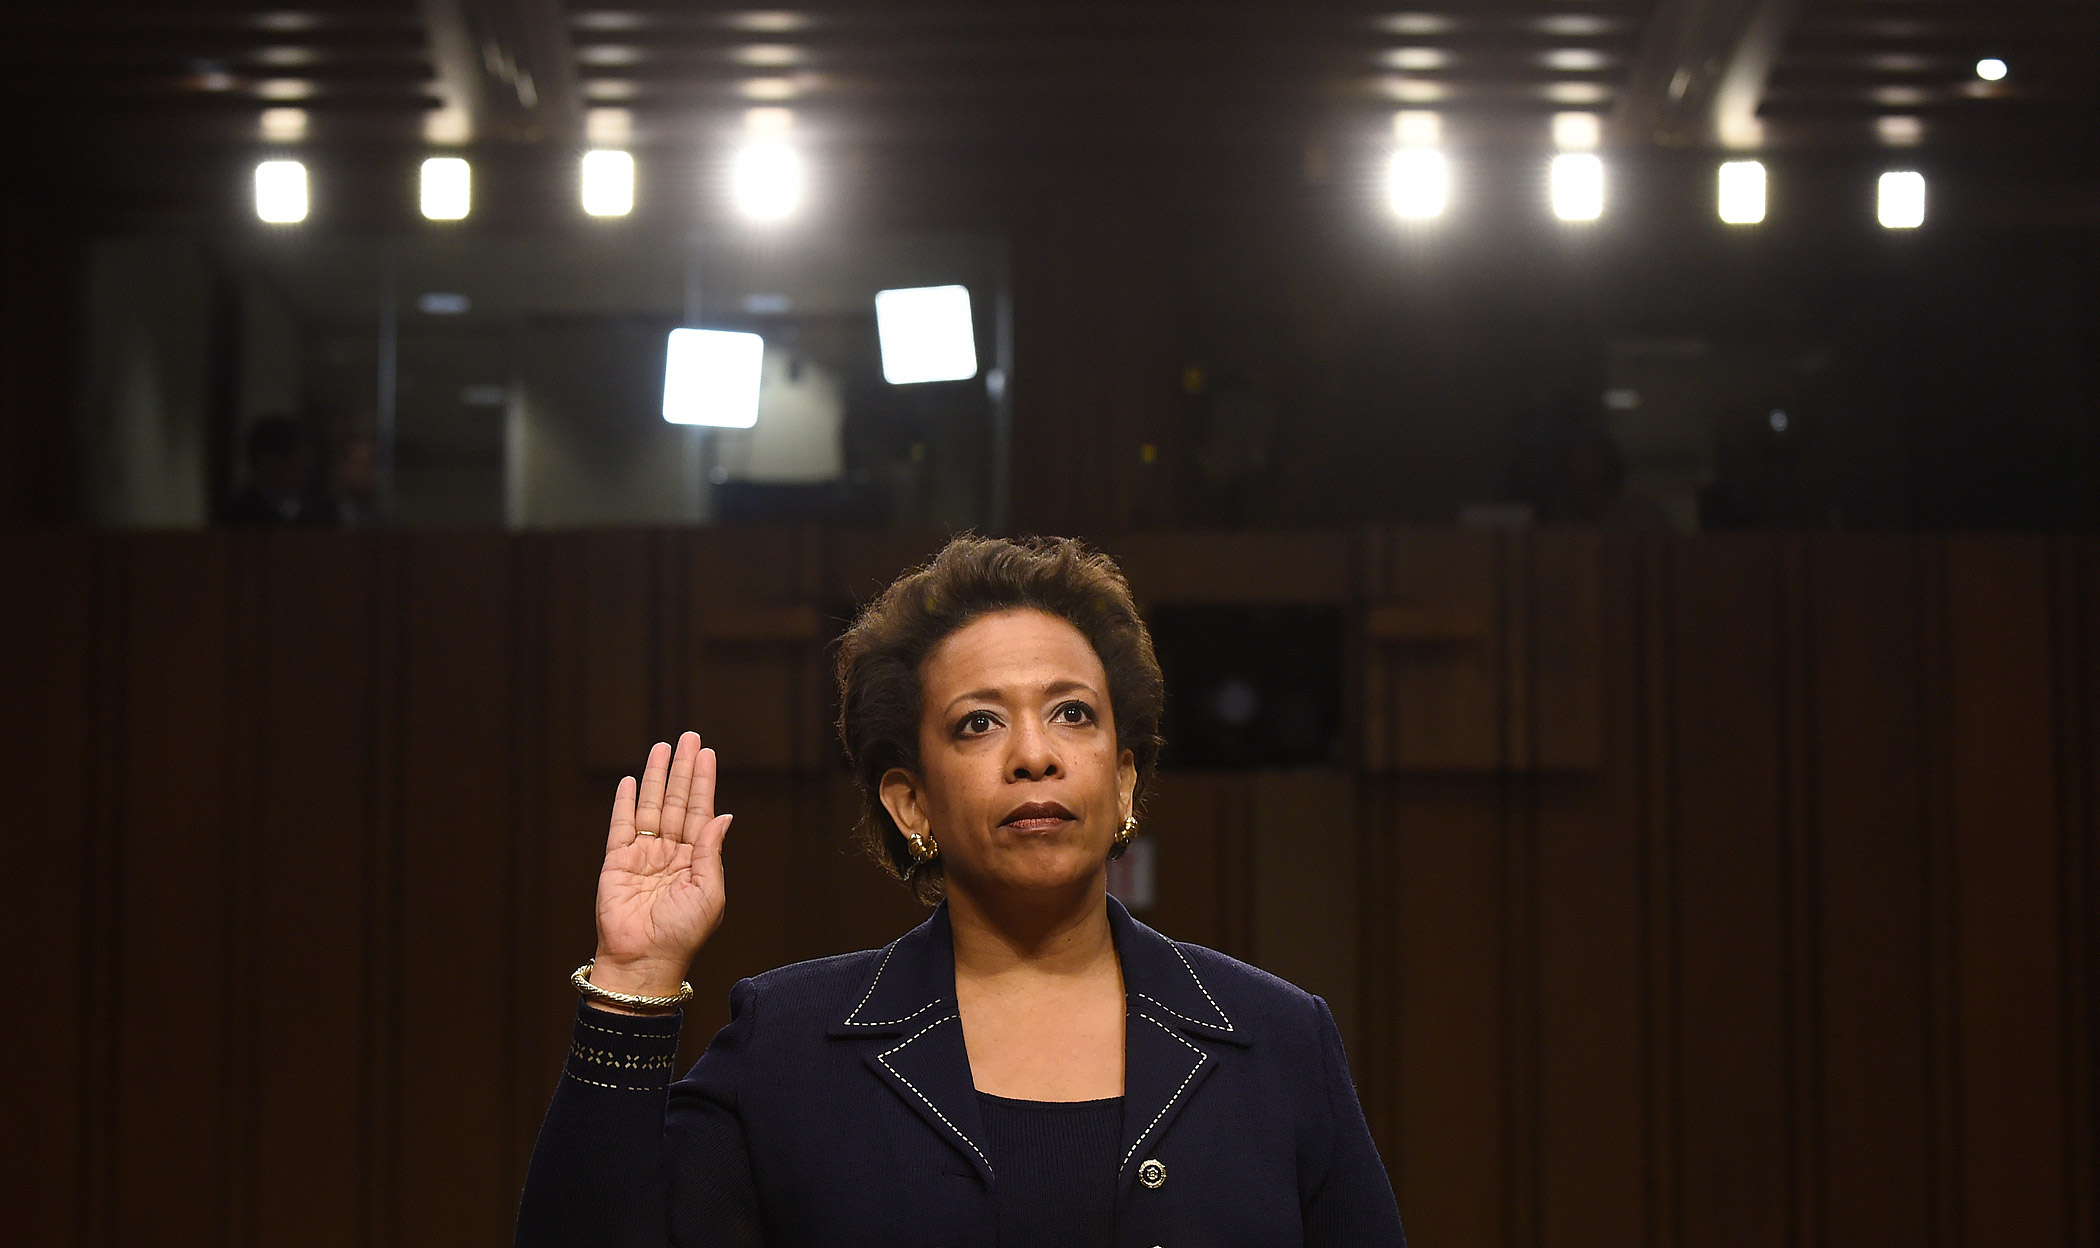 Attorney General nominee Loretta Lynch is sworn in on Capitol Hill in Washington on Jan. 28, 2015 prior to testifying before the Senate Judiciary Committee's hearing on her nomination.